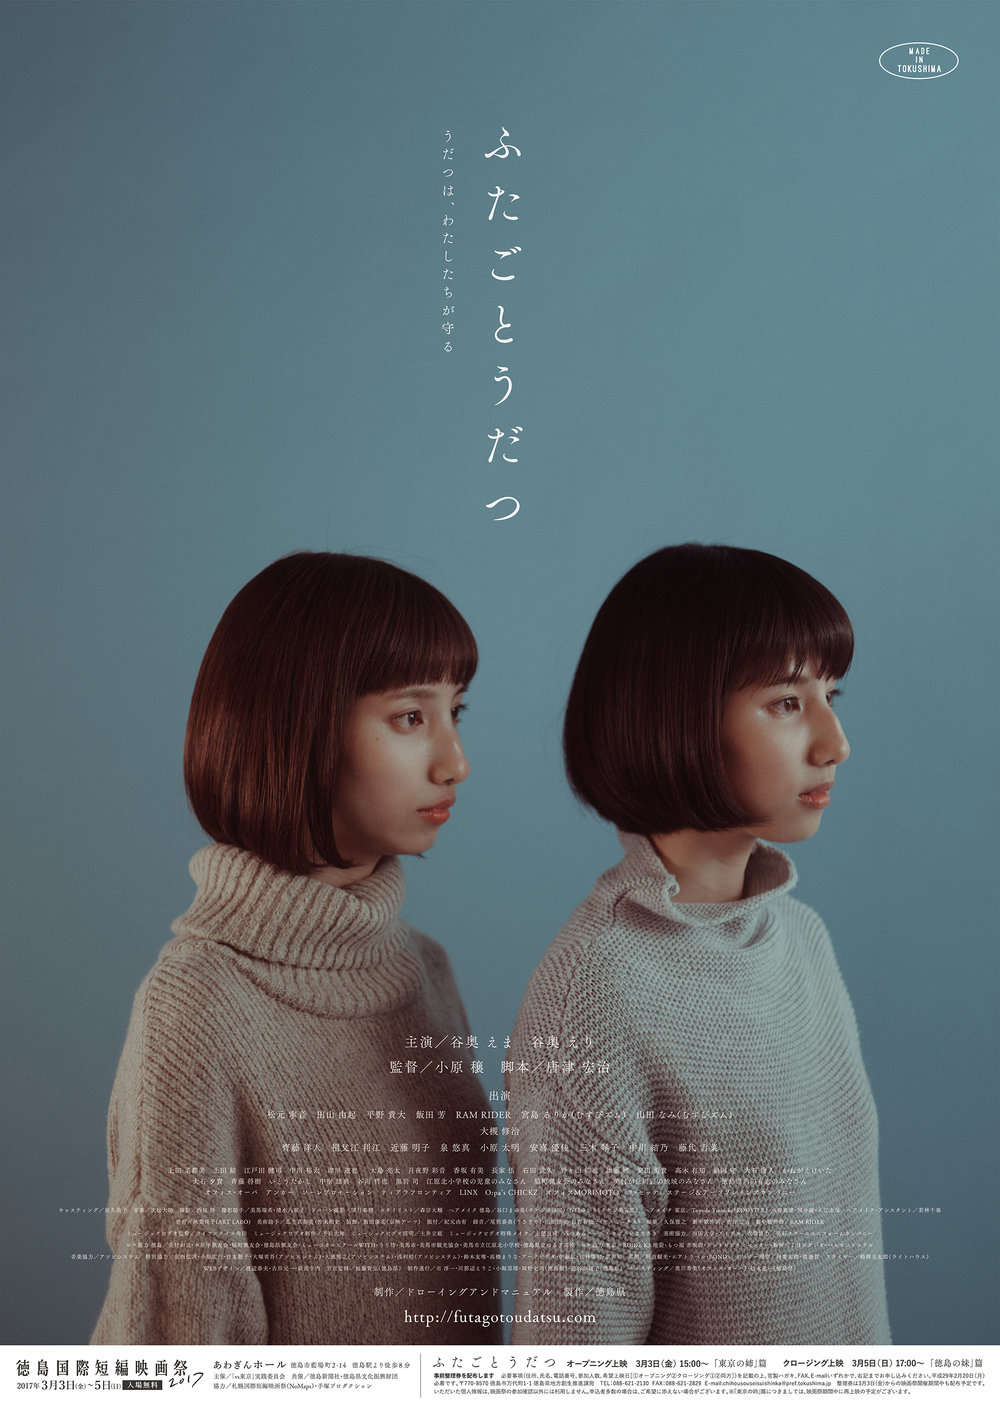 "「ふたごとうだつ」 - ""Shooting and Flaming -going to Tokyo, staying in Tokushima-"" Co-produced with Tokushima Prefectural Government. A set of two films about the twin sisters, the one going to Tokyo and the other staying in Tokushima, of a story located in Mima, Tokushima, focusing on topics such as hunting, udatsu (the fire walls between gabled roofs of adjacent houses), and migration. The spin-off music video of an original song performed by an imaginary idol unit produced and released at the same time.徳島県との共作。東京の姉編、徳島の妹編の二編を制作。徳島県美馬市にスポットをあて、「狩猟」「うだつ」そして「上京」といったことを取り上げている。オリジナルアイドルソングも同時に制作し、スピンオフ作品としてMVも公開"